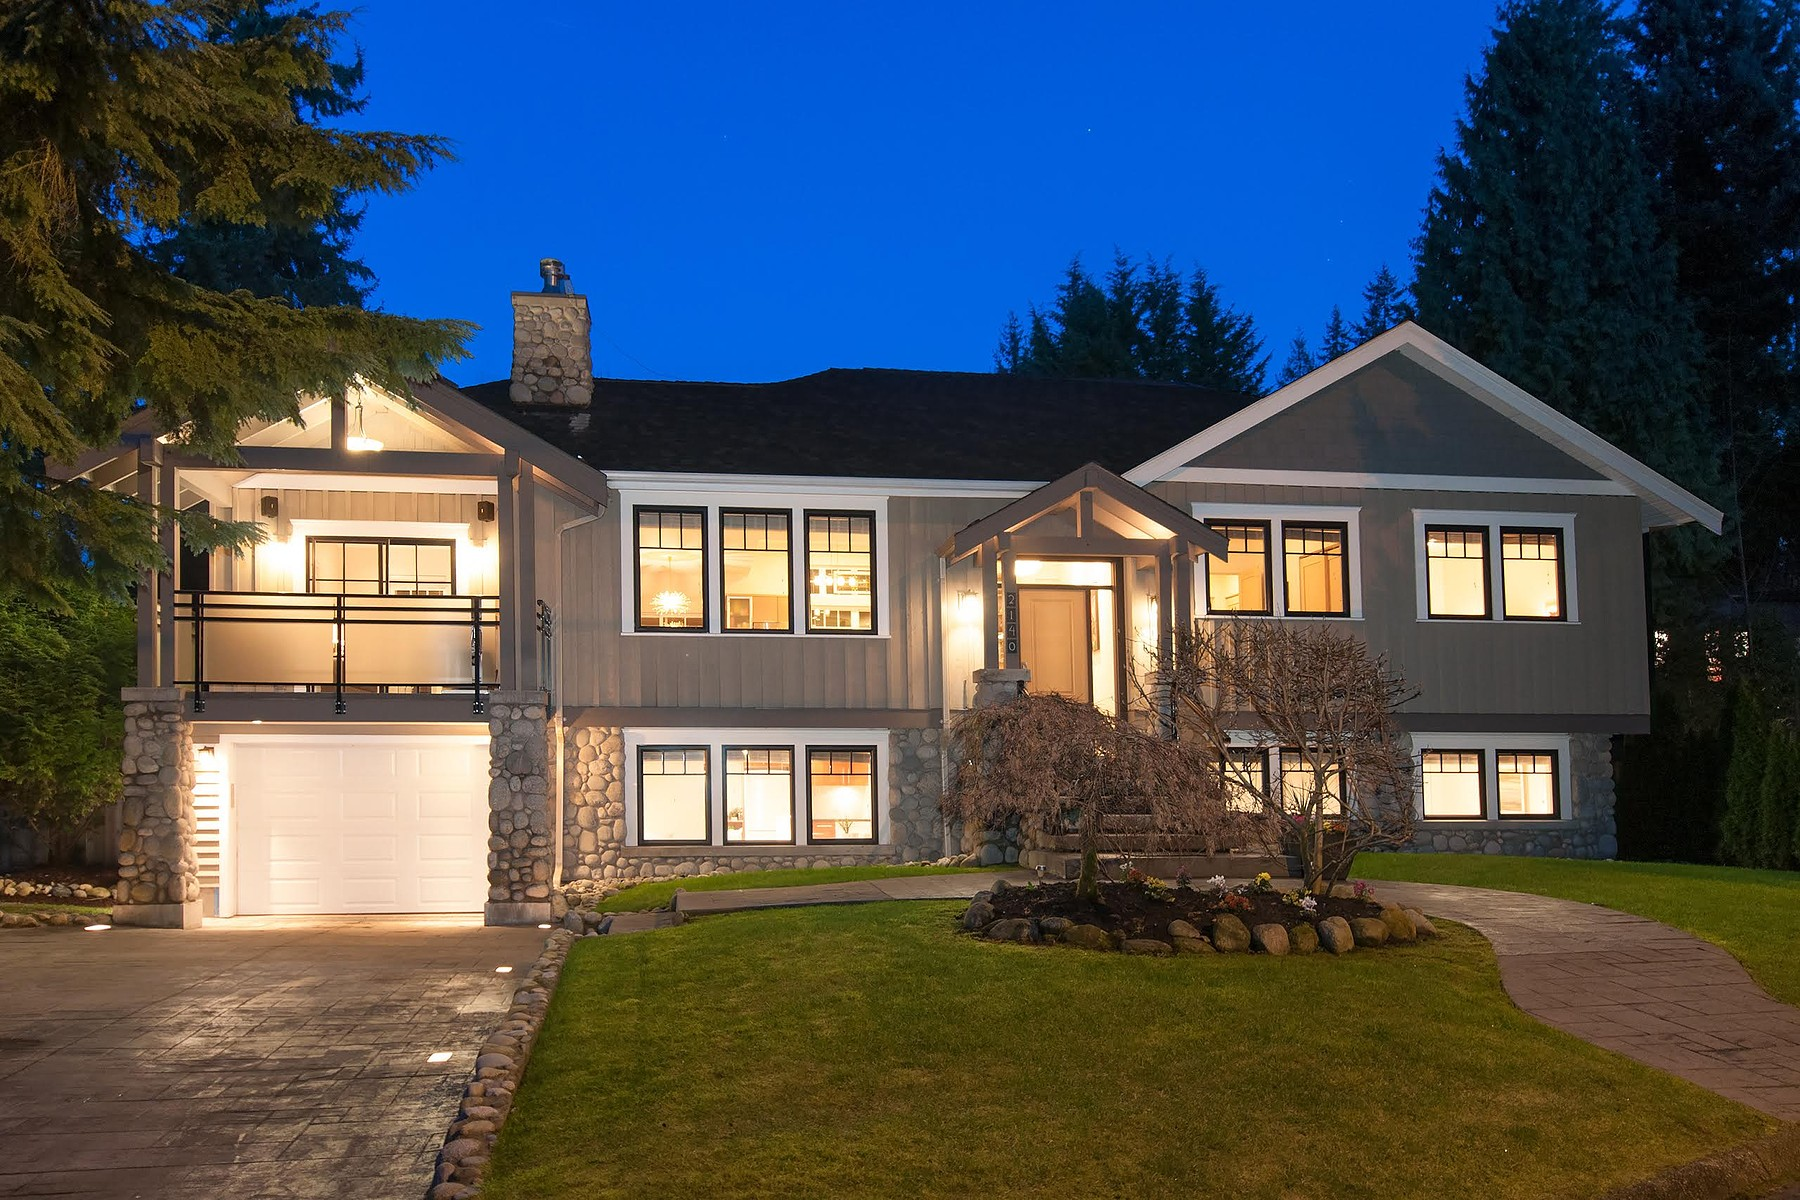 Villa per Vendita alle ore Beautiful West Coast Craftsman 2140 Pemberton Avenue North Vancouver, Columbia Britannica V7P 2T1 Canada